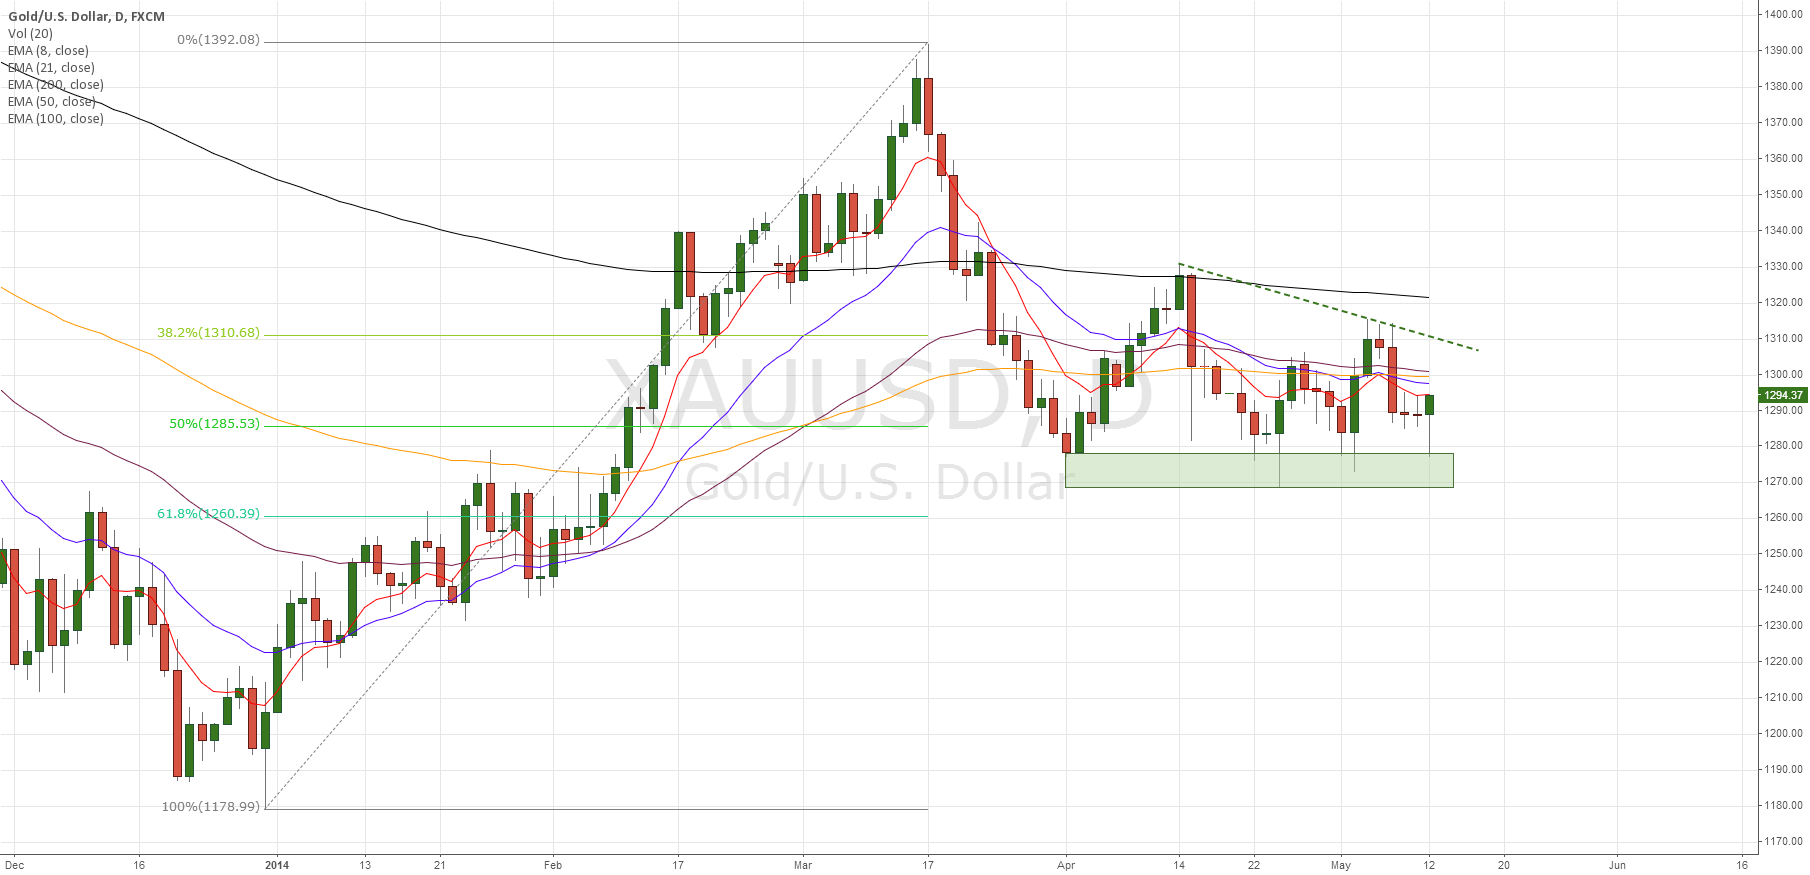 Gold found support and looks ready for move higher